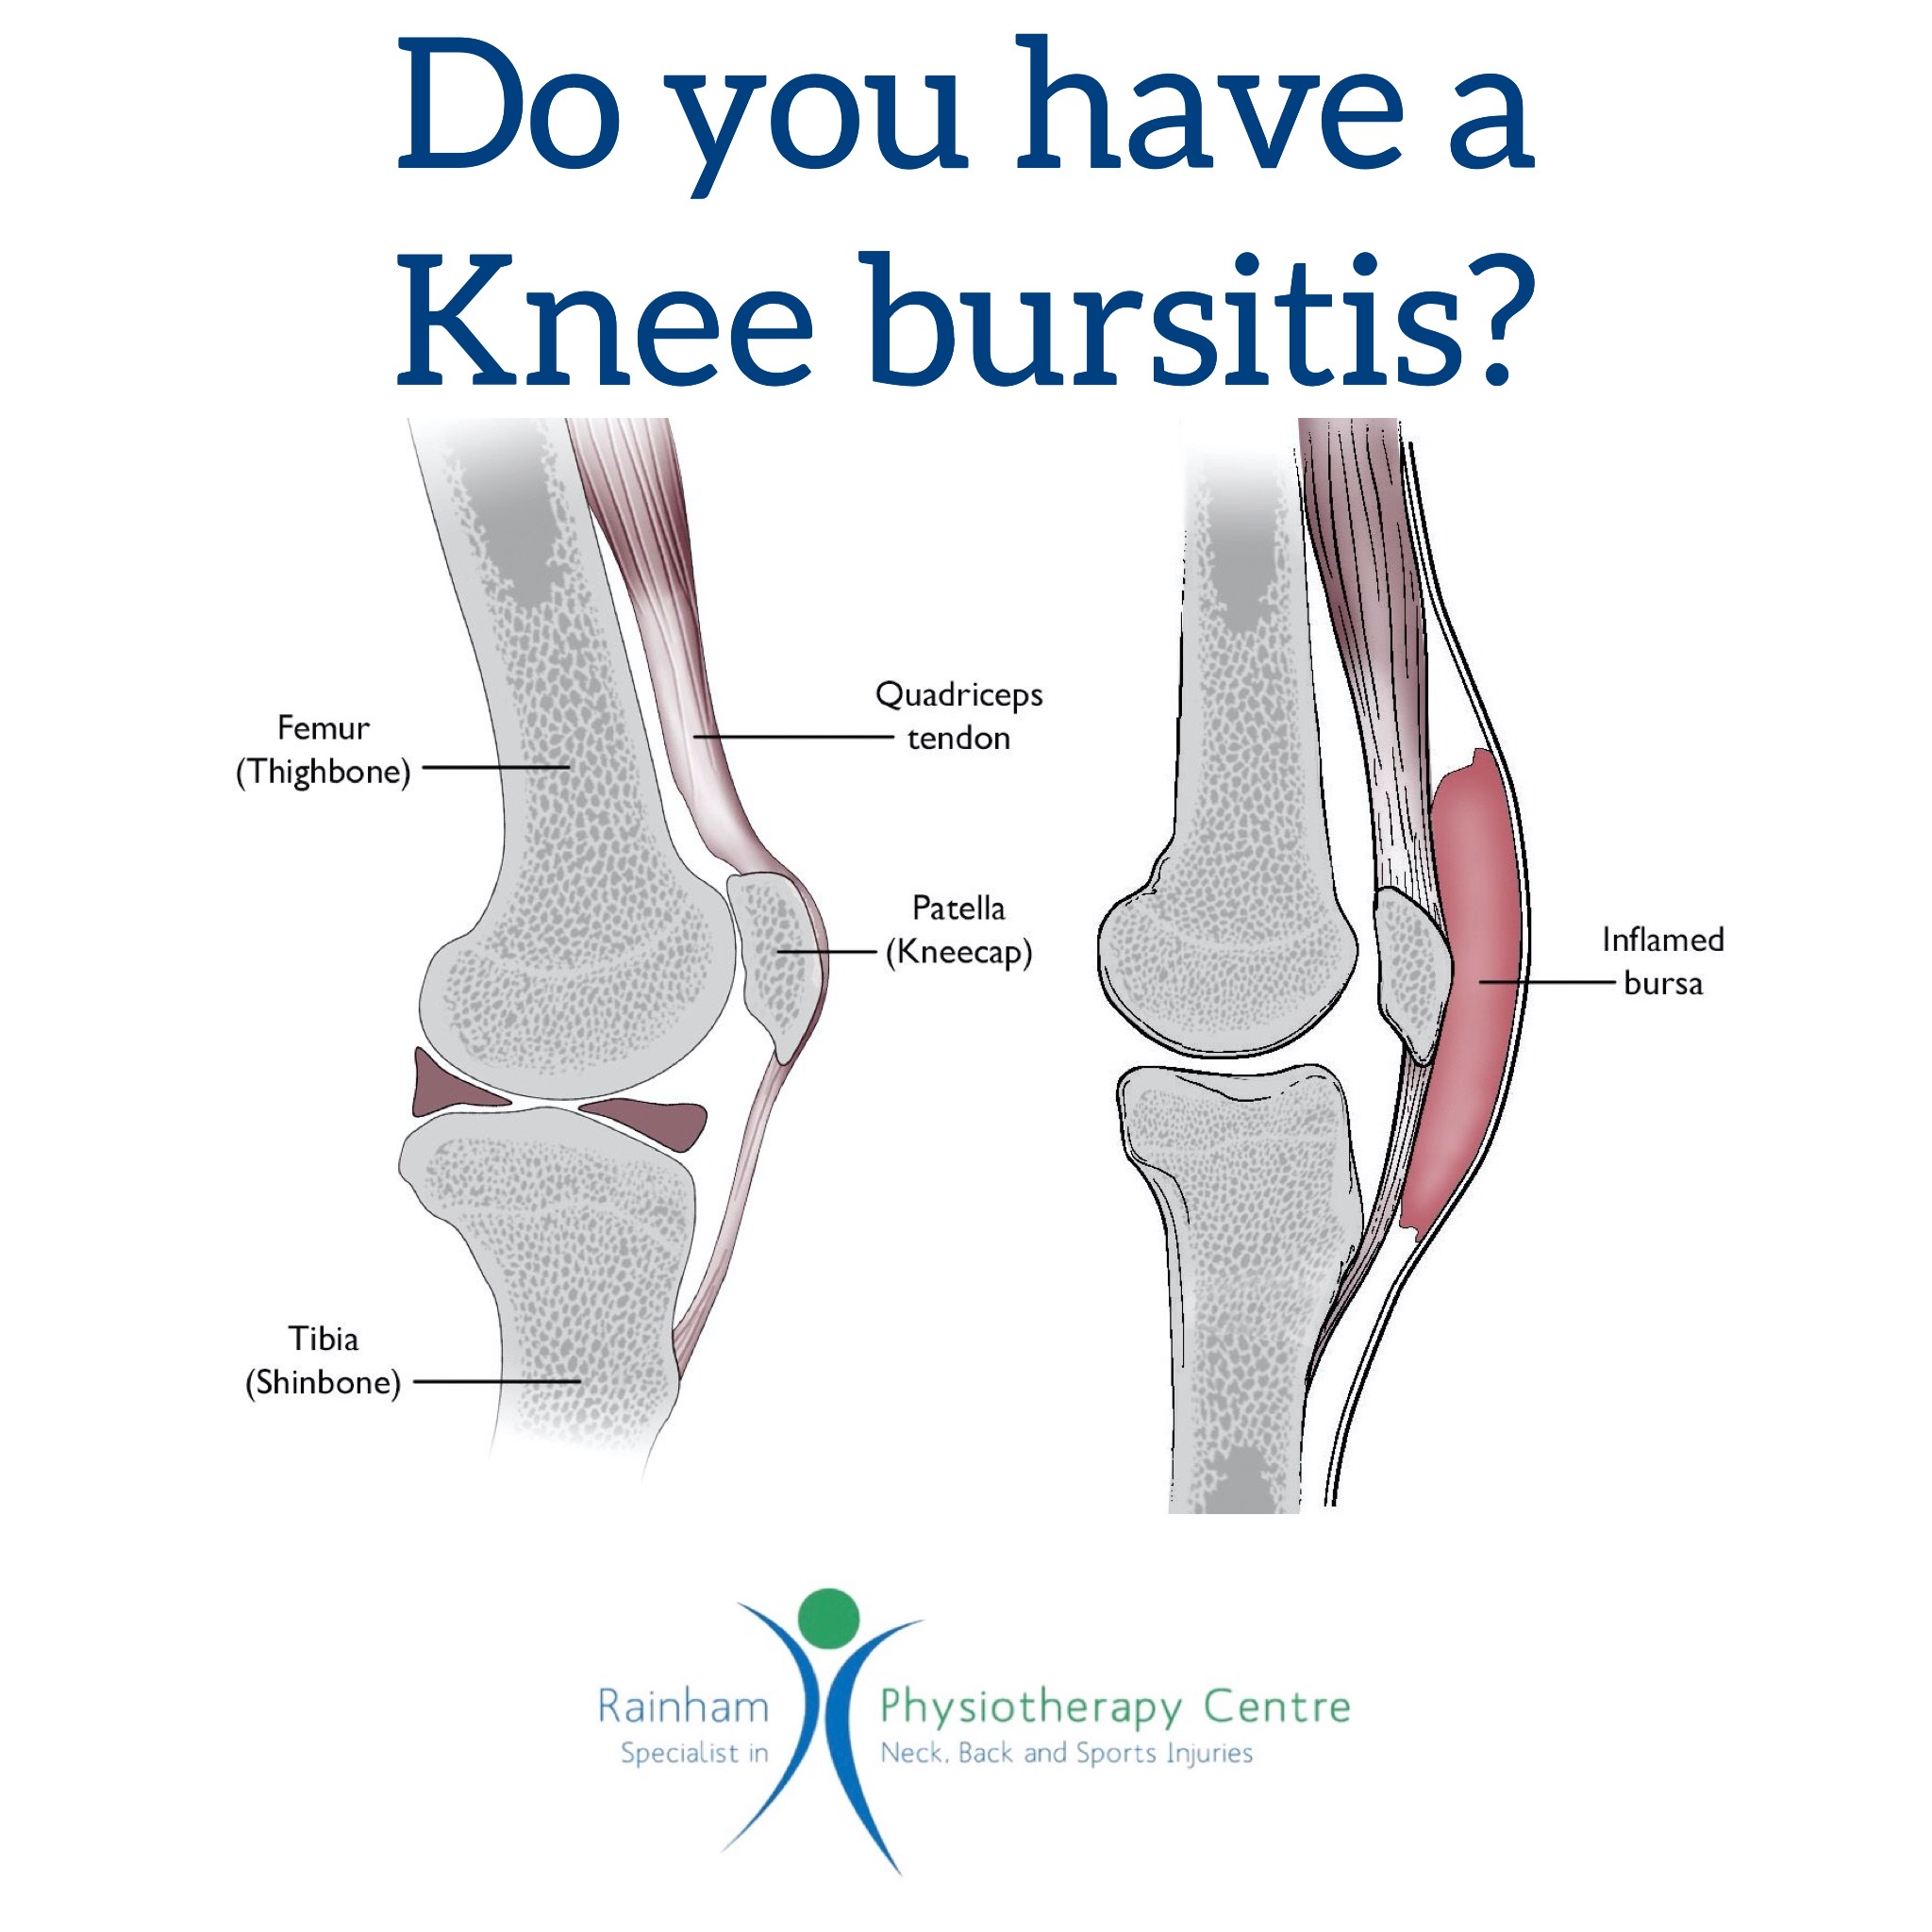 Do you have a knee bursitis?